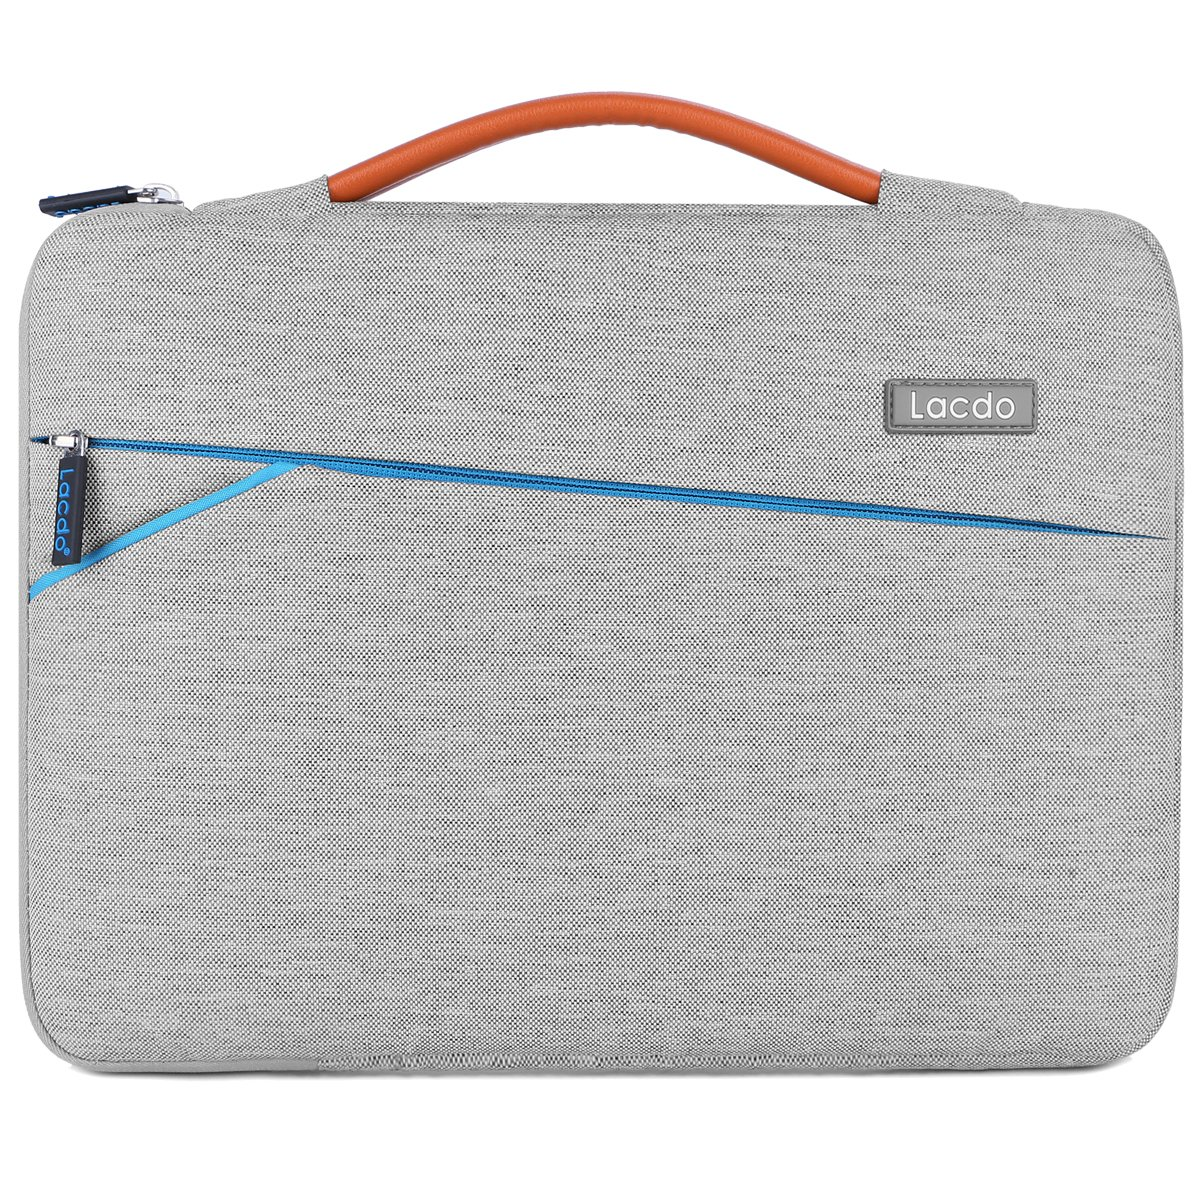 Lacdo 15-15.6 Inch Laptop Sleeve Case for MacBook Pro 15.4-inch Retina Display ASUS X551MA / F555LA Toshiba Satellite / Dell Inspiron / HP / Lenovo Notebook Bag Water Repellent, Gray B1A17C1